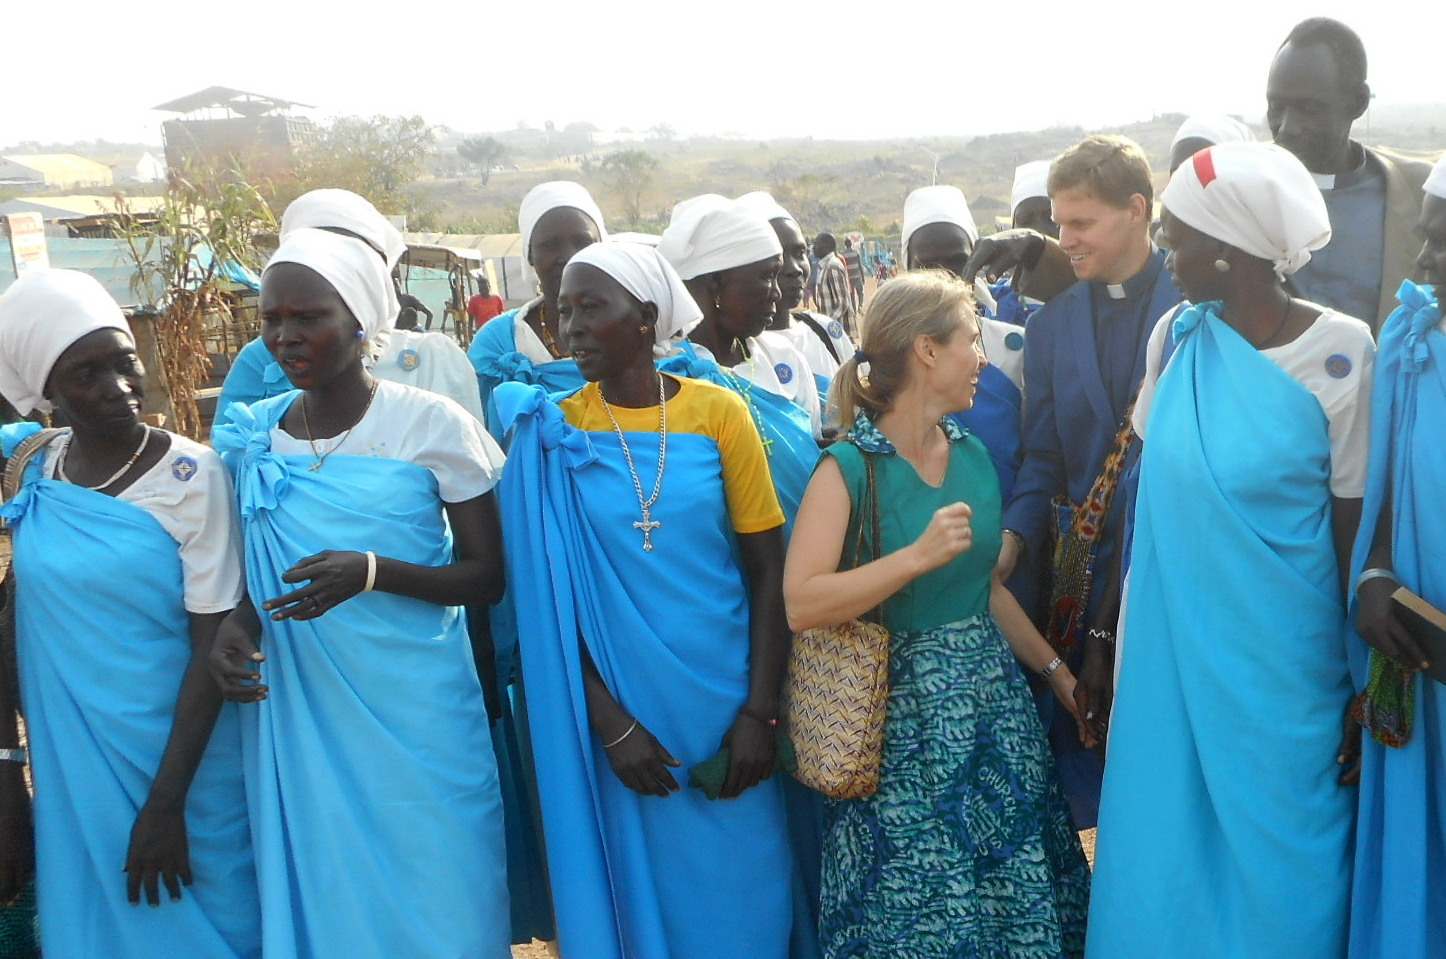 Bob and Kristi Rice are escorted by the Women's Choir of Nuer United Church in an Internally Displaced Persons camp.